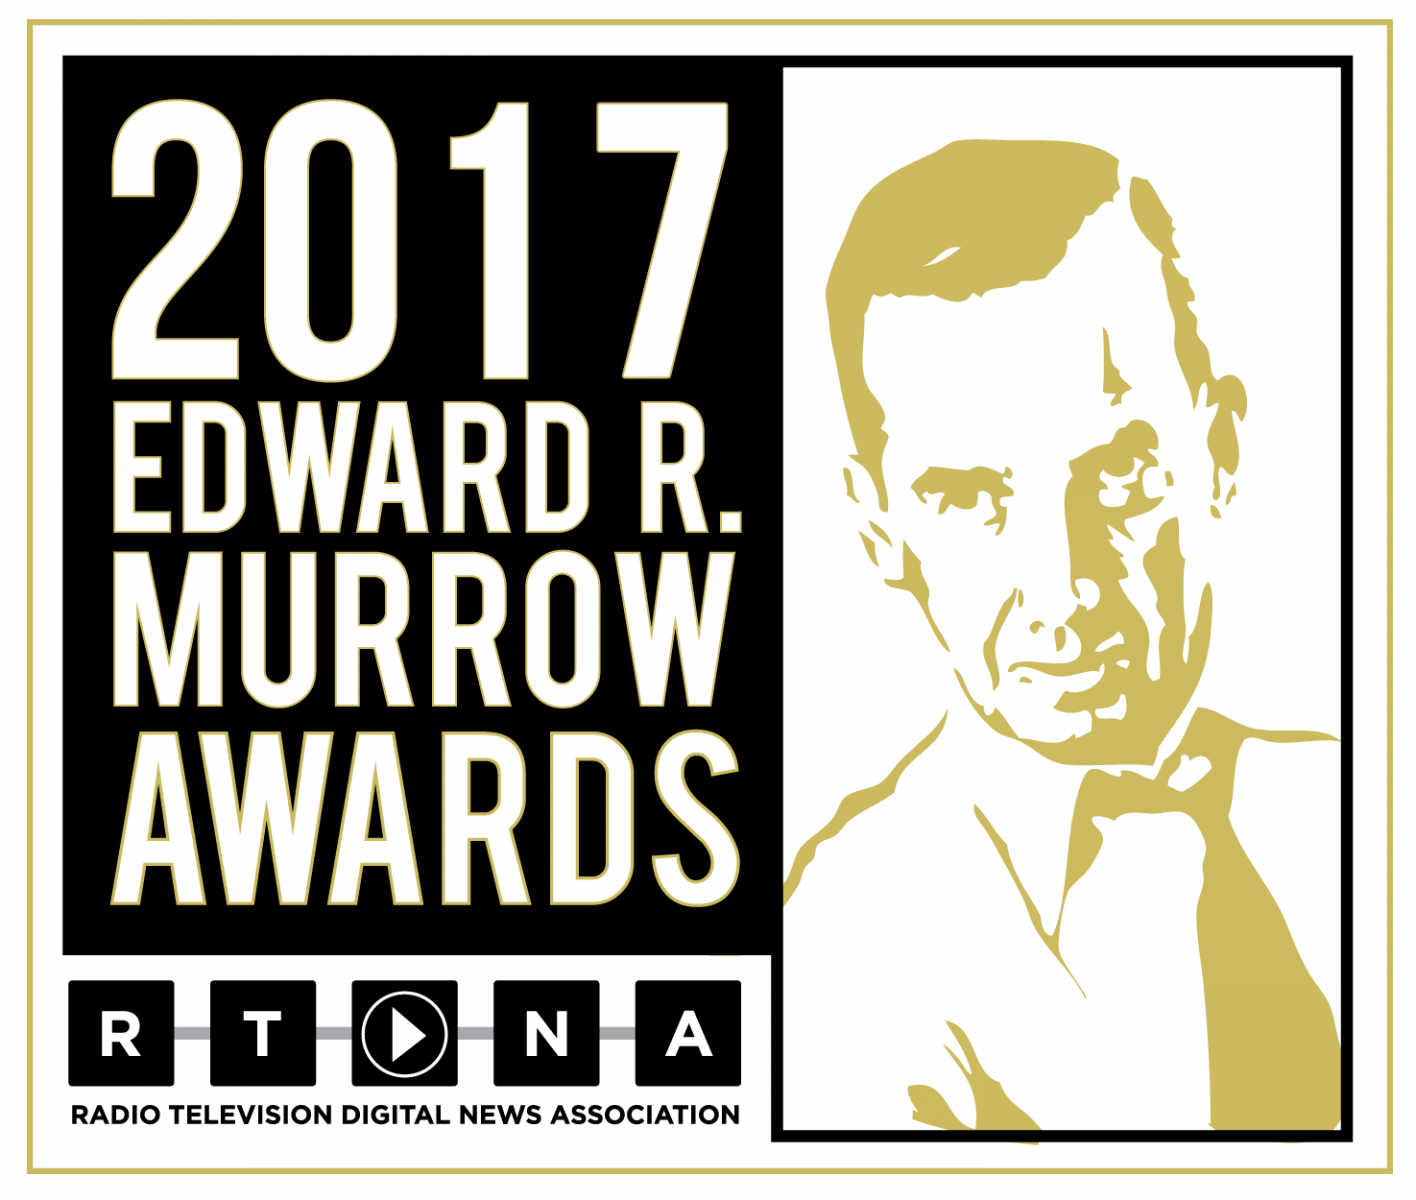 Globalnews.ca honoured with prestigious Edward R. Murrow award for best website